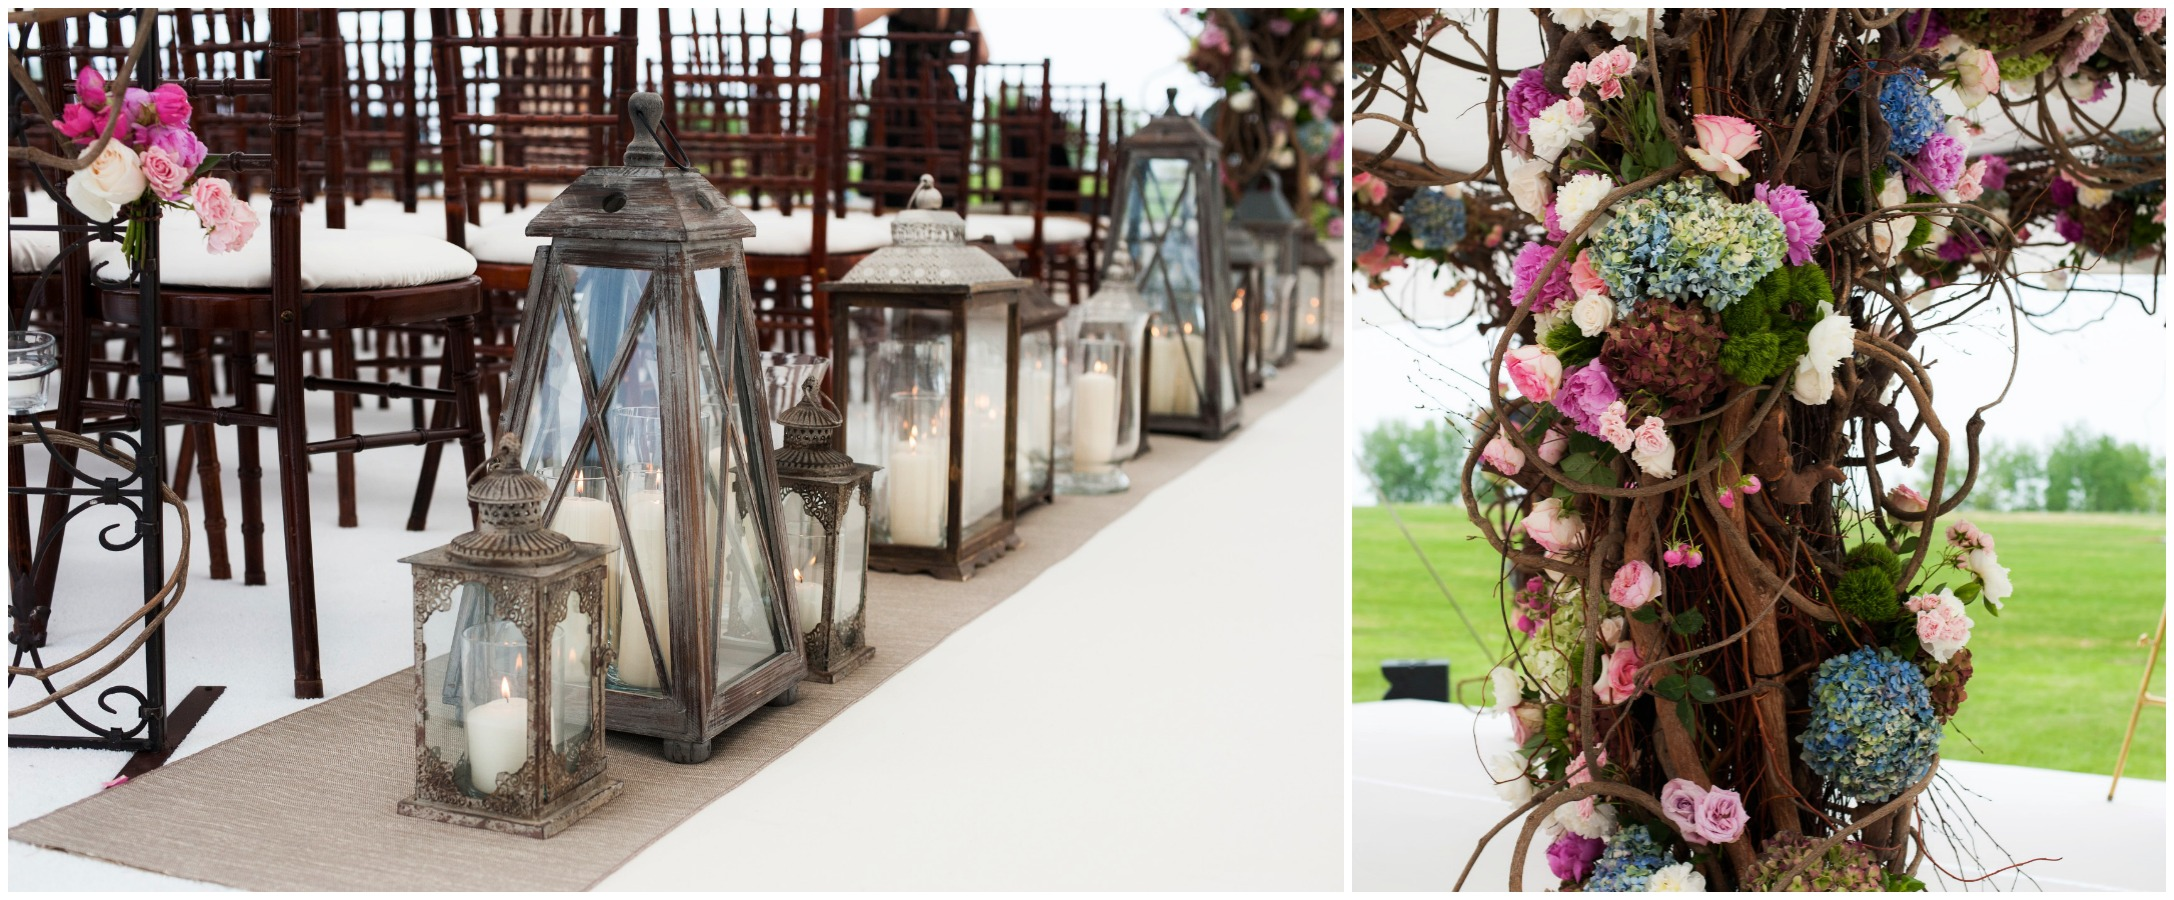 Outdoor summer wedding details by HMR Designs Chicago